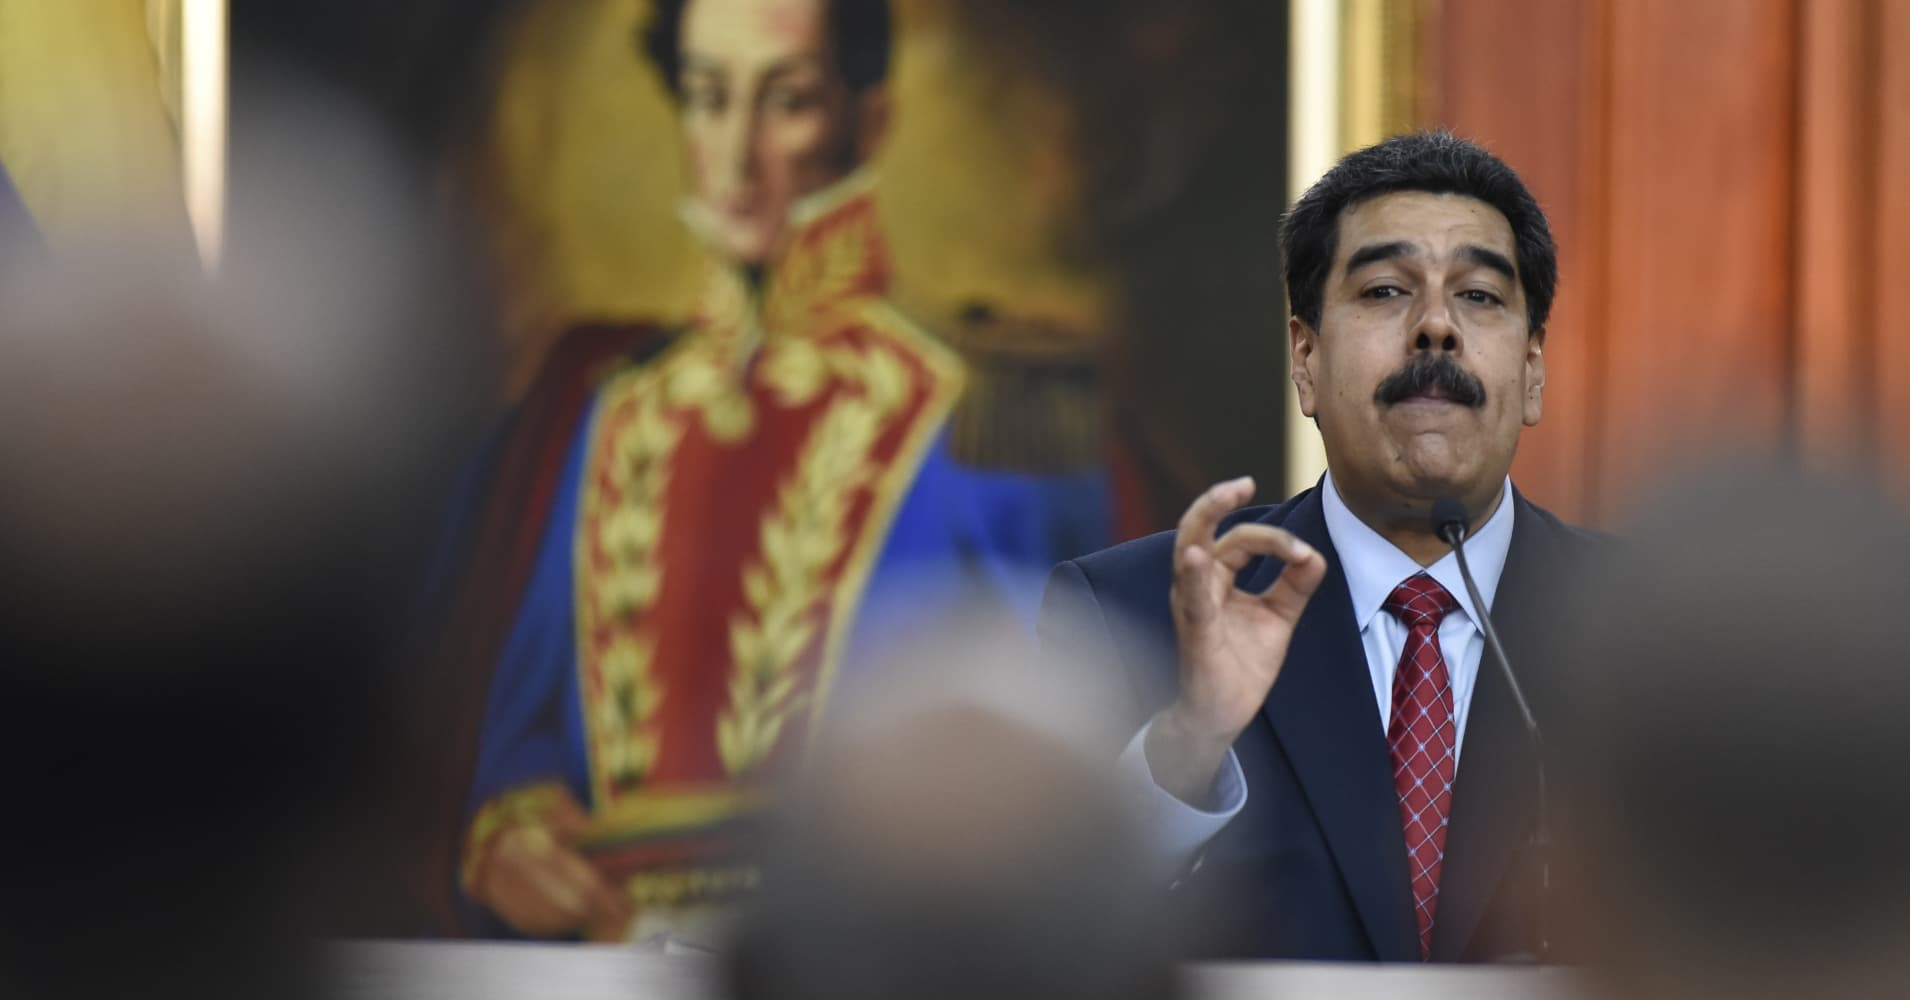 Venezuela crisis: Major global powers ordered to stop trading oil and gold assets with Maduro